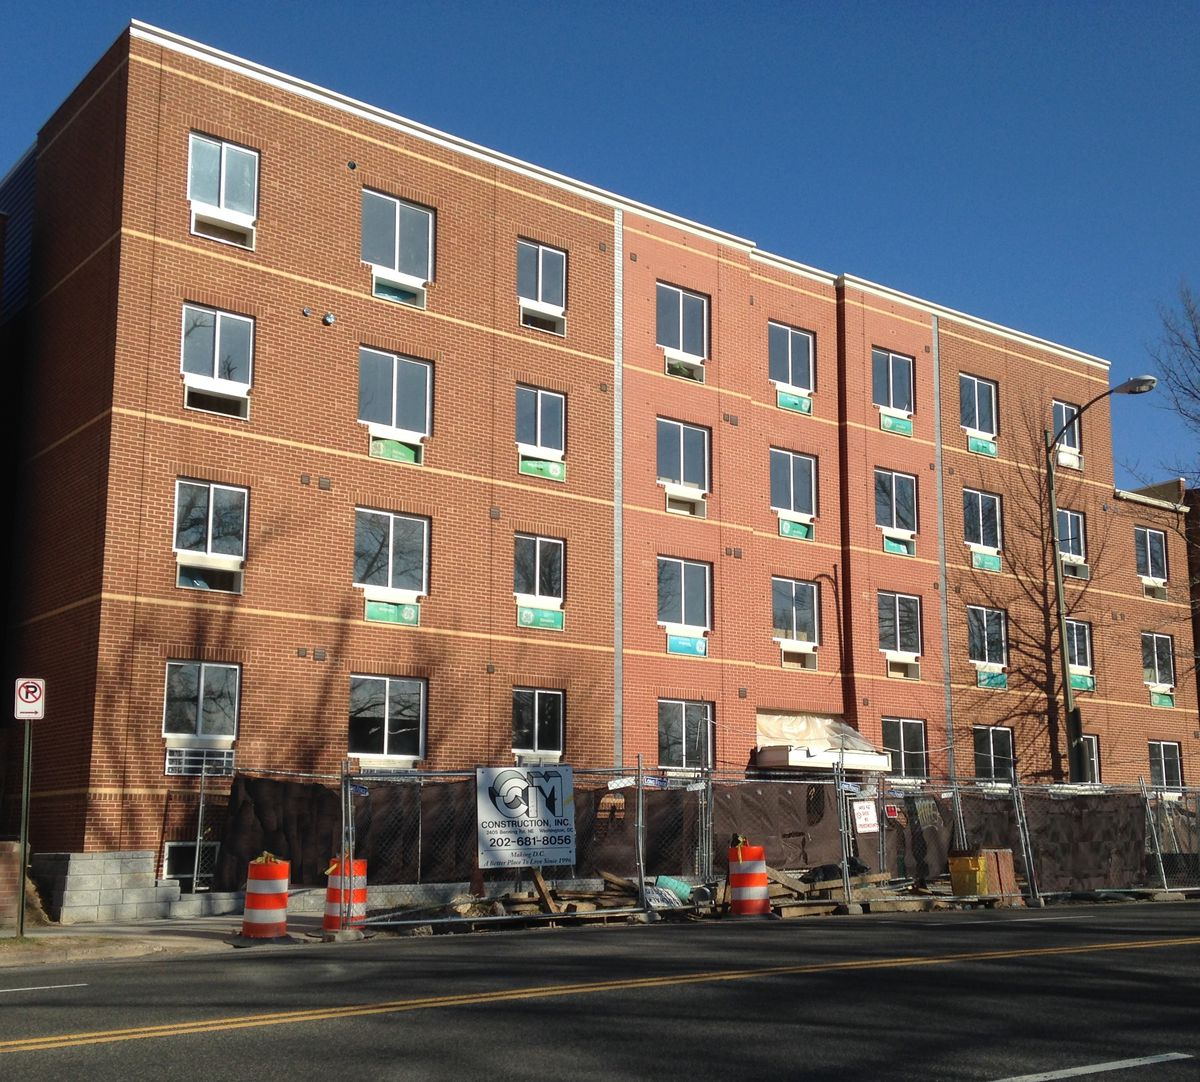 Affordable Housing In D.C., According To DHCD Director